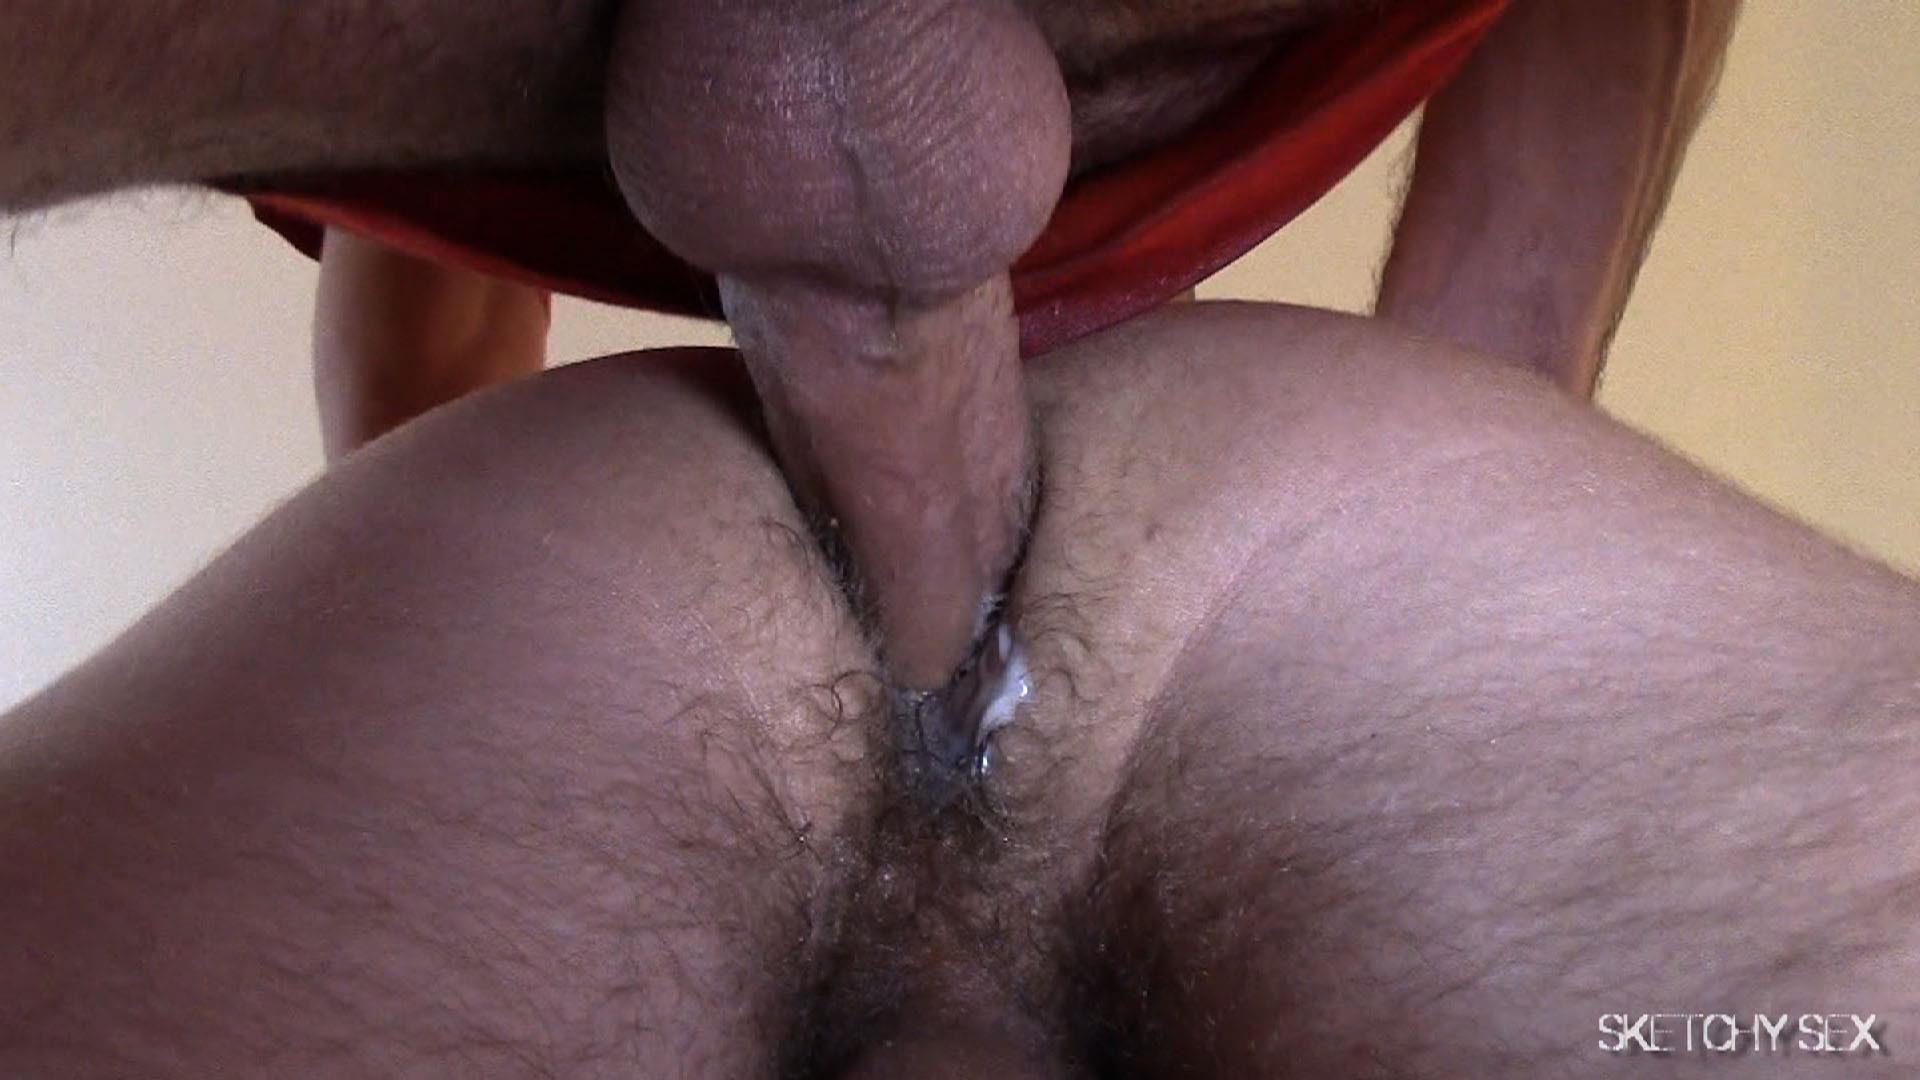 Sketchy Sex Nate Getting Fucked Bareback By A 10 Inch Craigslist Cock Amateur Gay Porn 11 Taking A 10